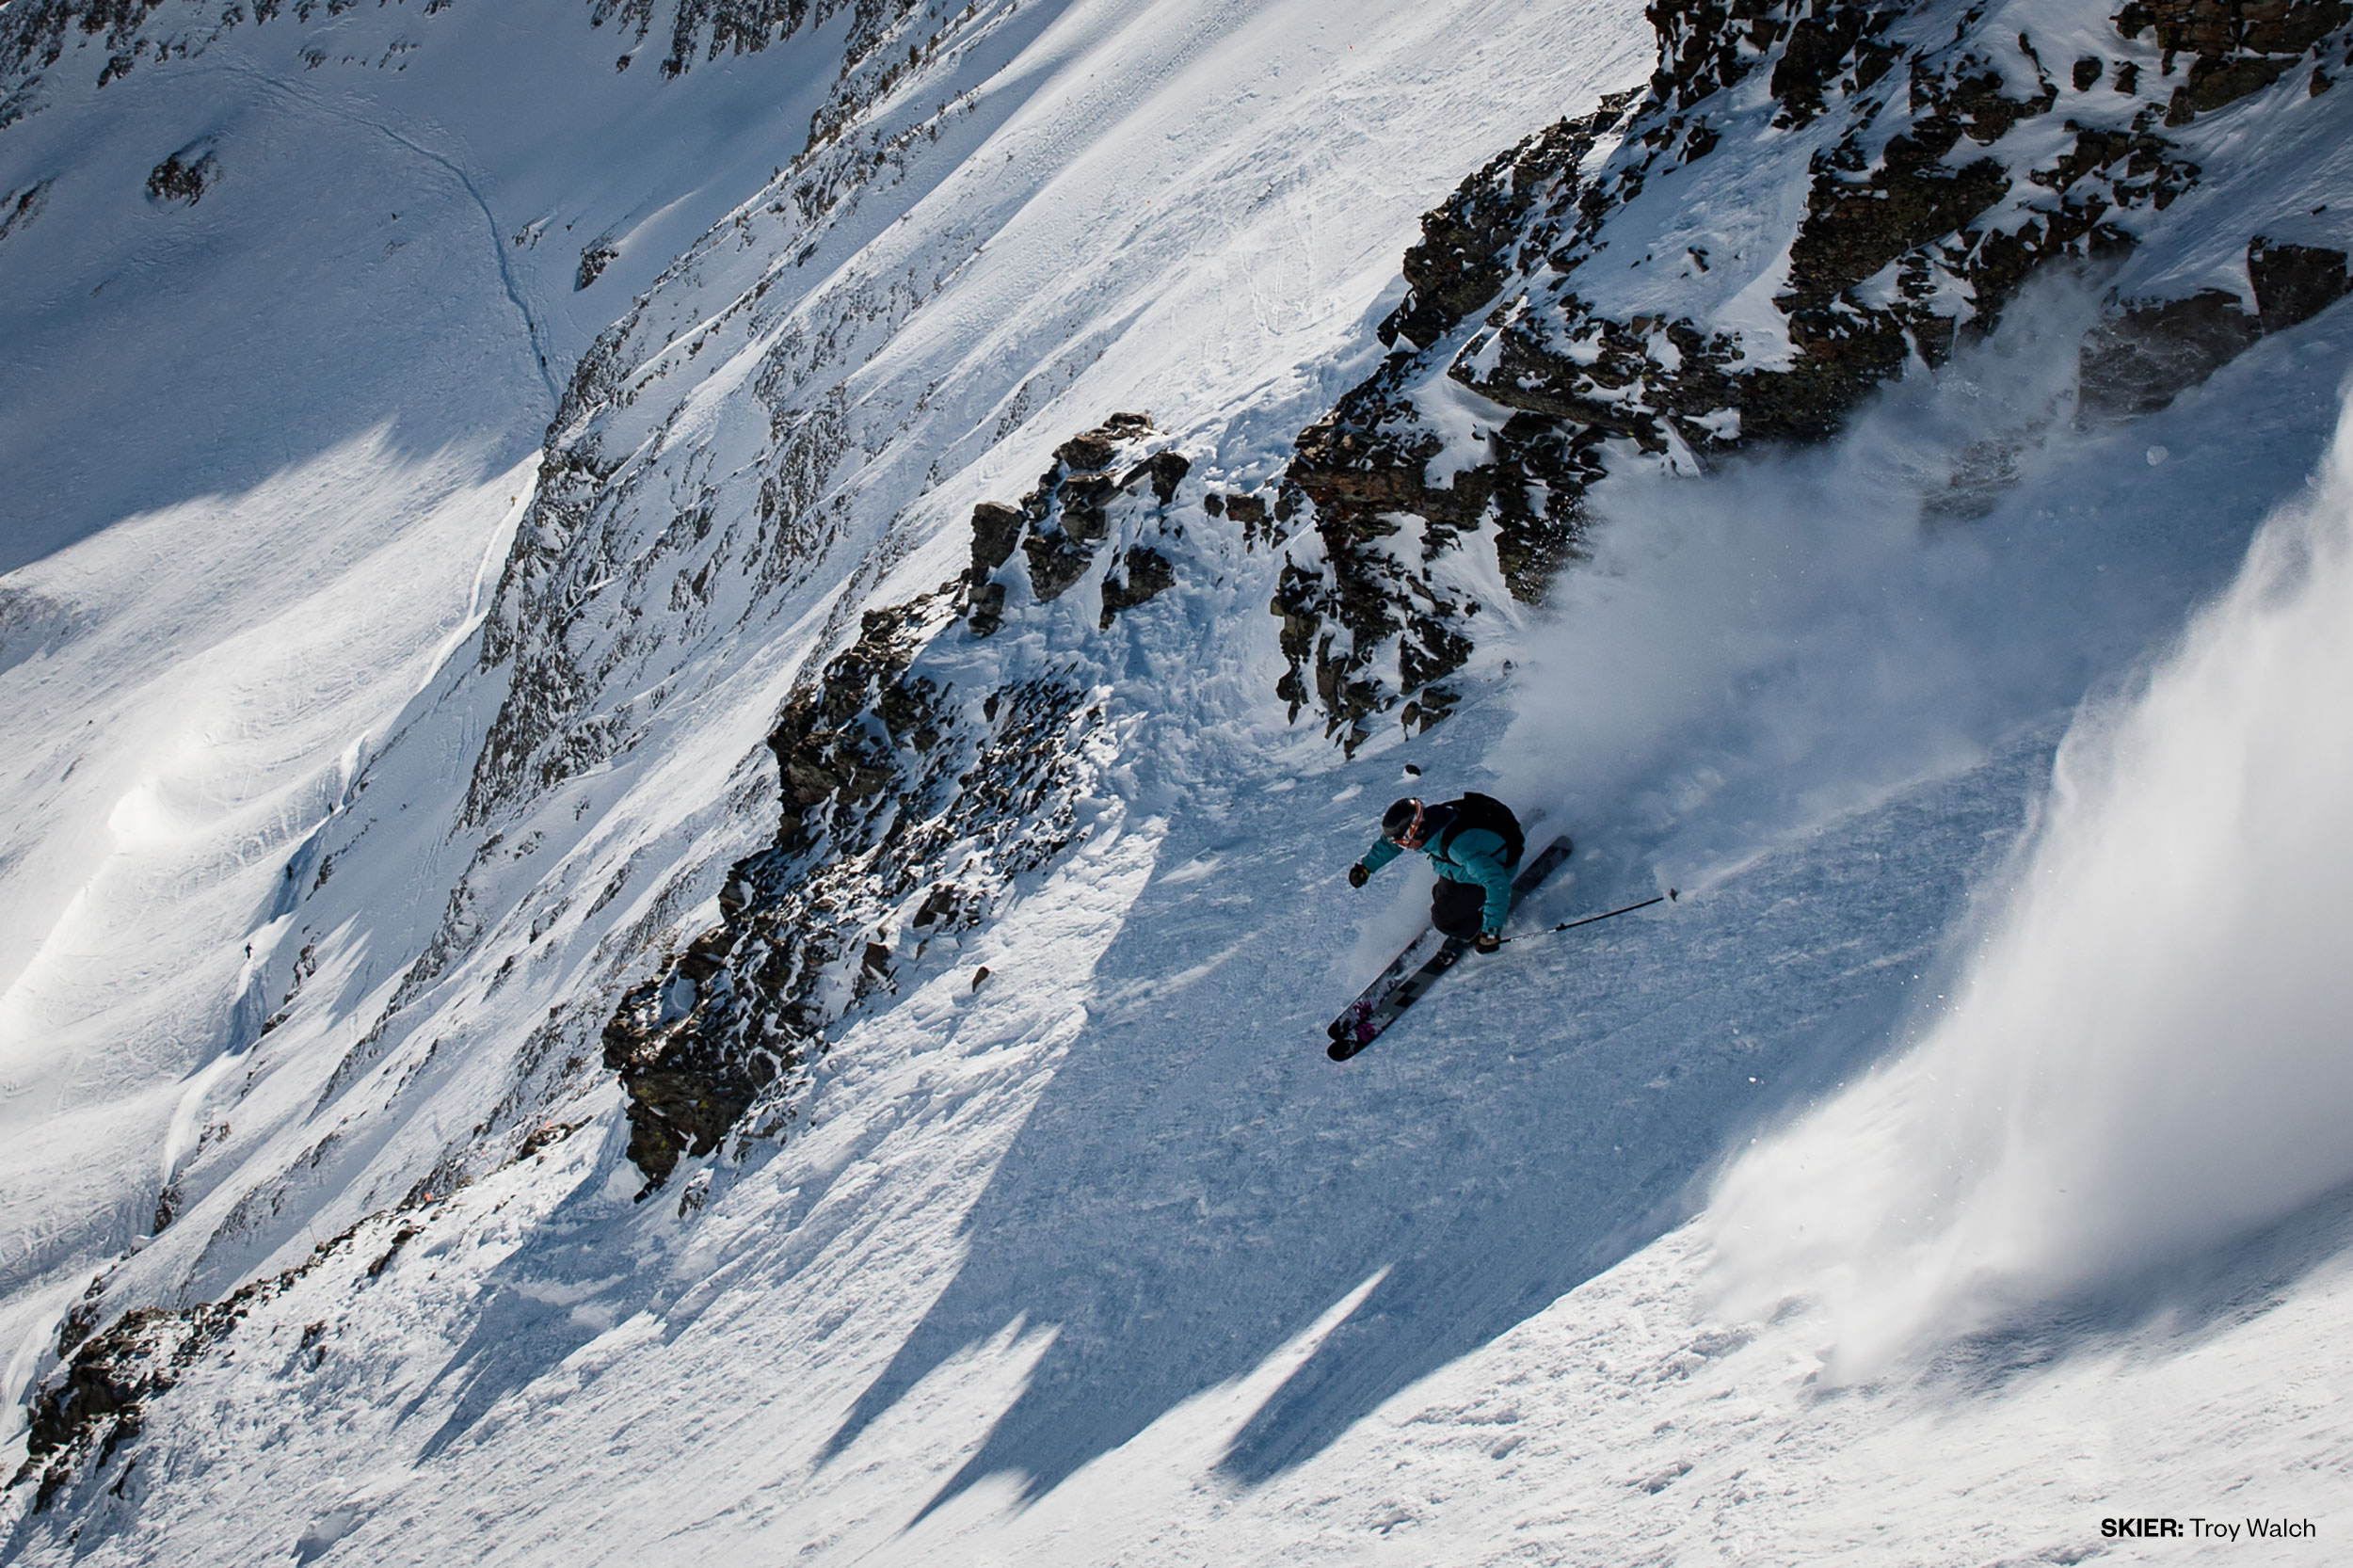 Troy Walch - Big Sky - Powder Week